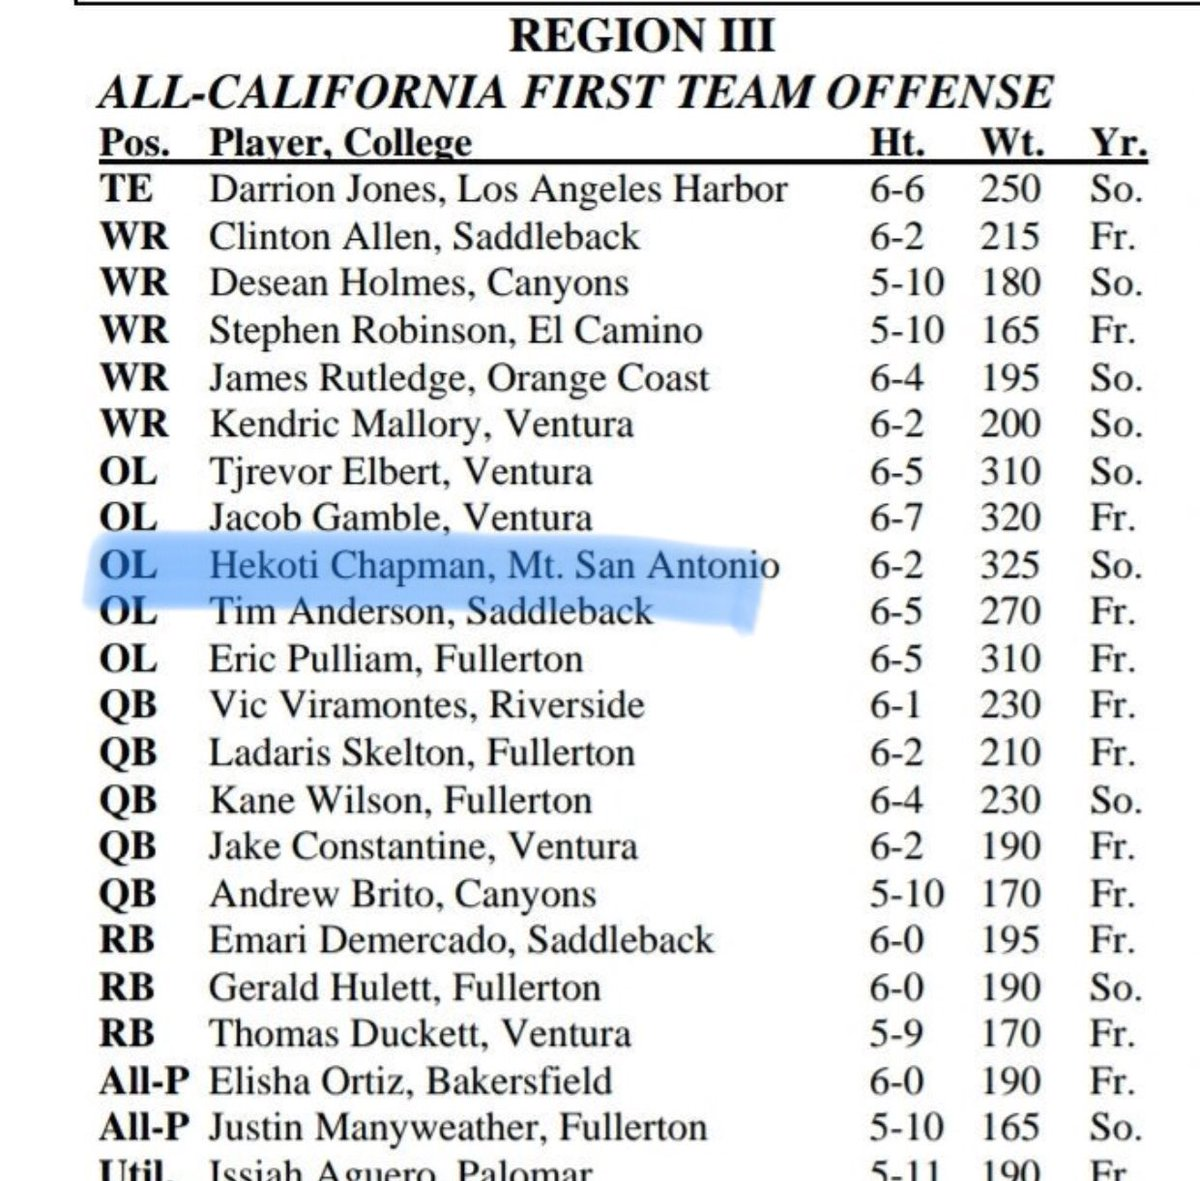 Blessed to have received 1st team All-State. #MtSacJucoProduct #Born2Win @mtsacfootball @_CoachSid